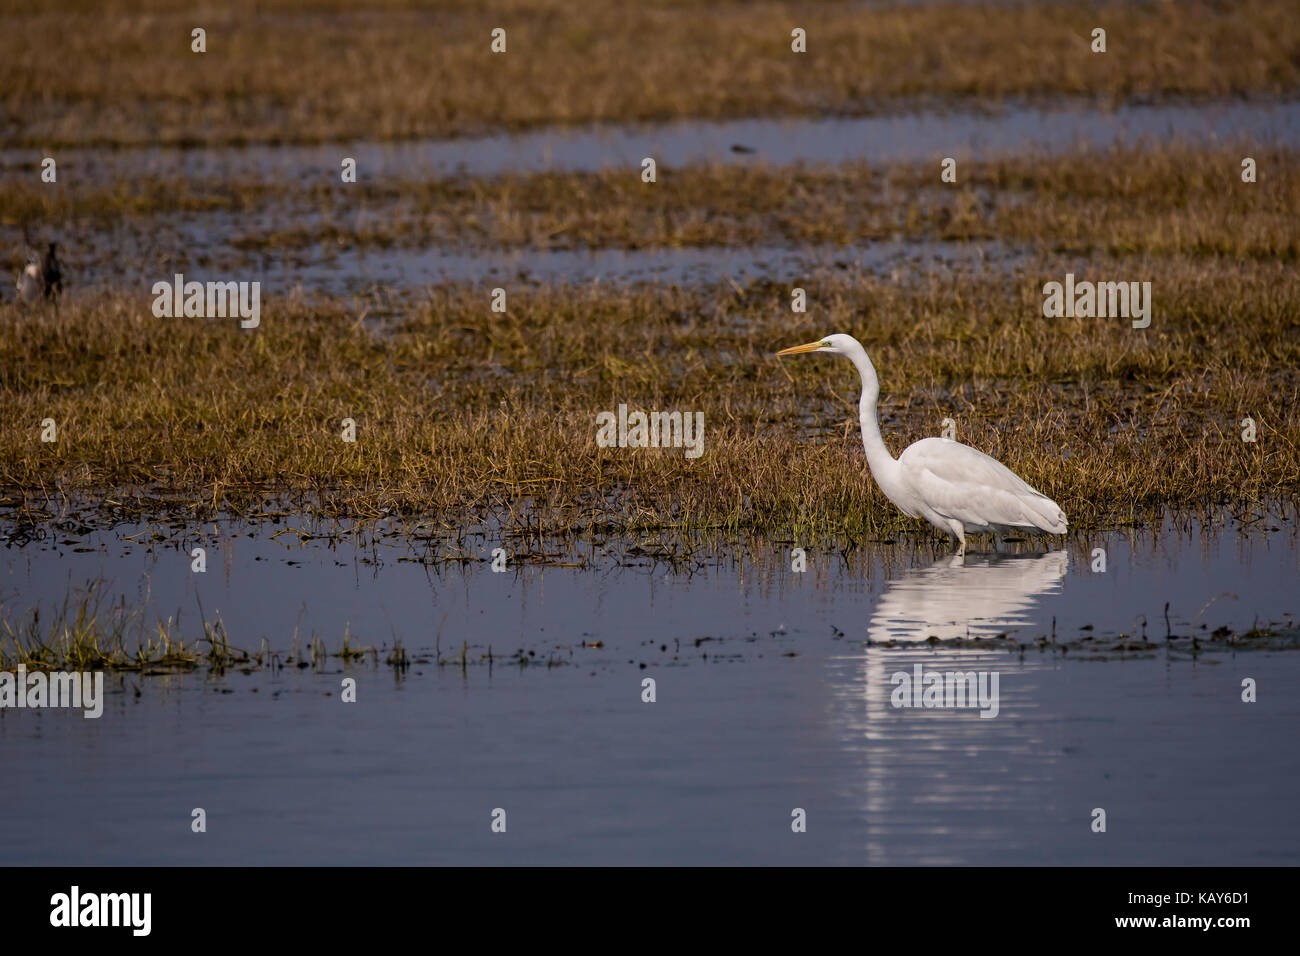 Large egret waiting patiently for a fish to swim by - Stock Image